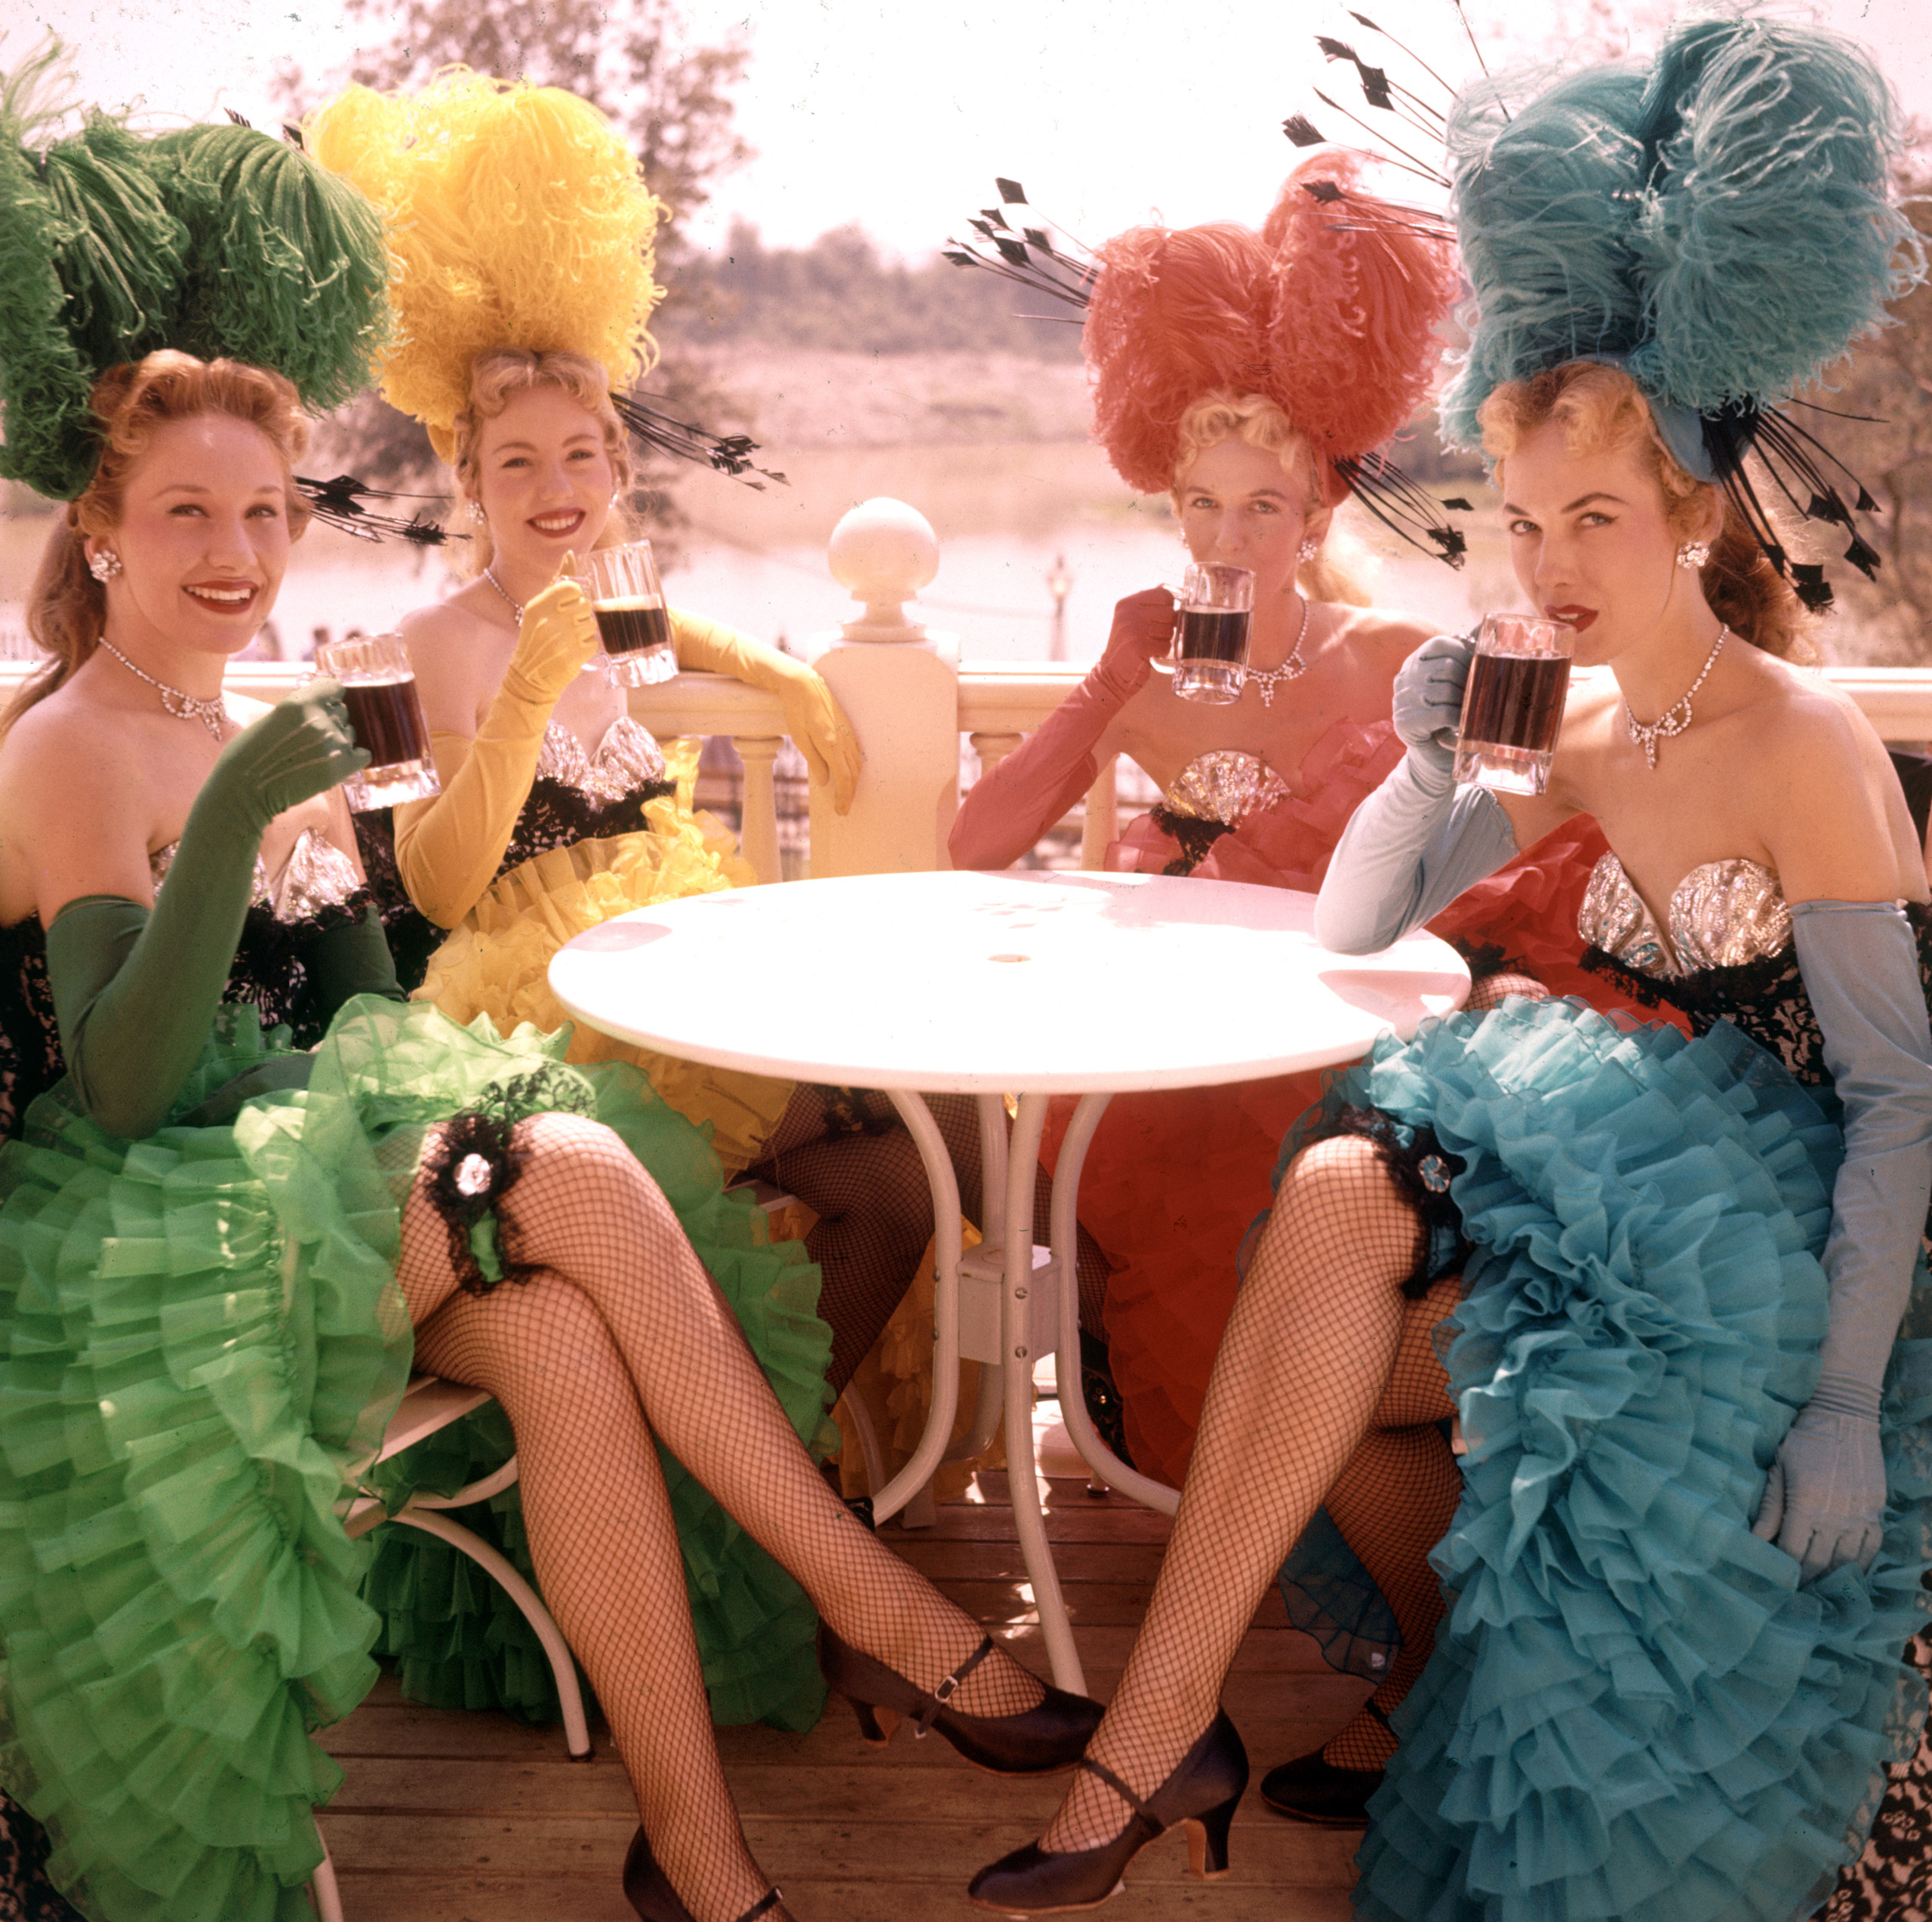 Showgirl performers taking a break and having a drink at Disneyland Amusement Park, 1955.